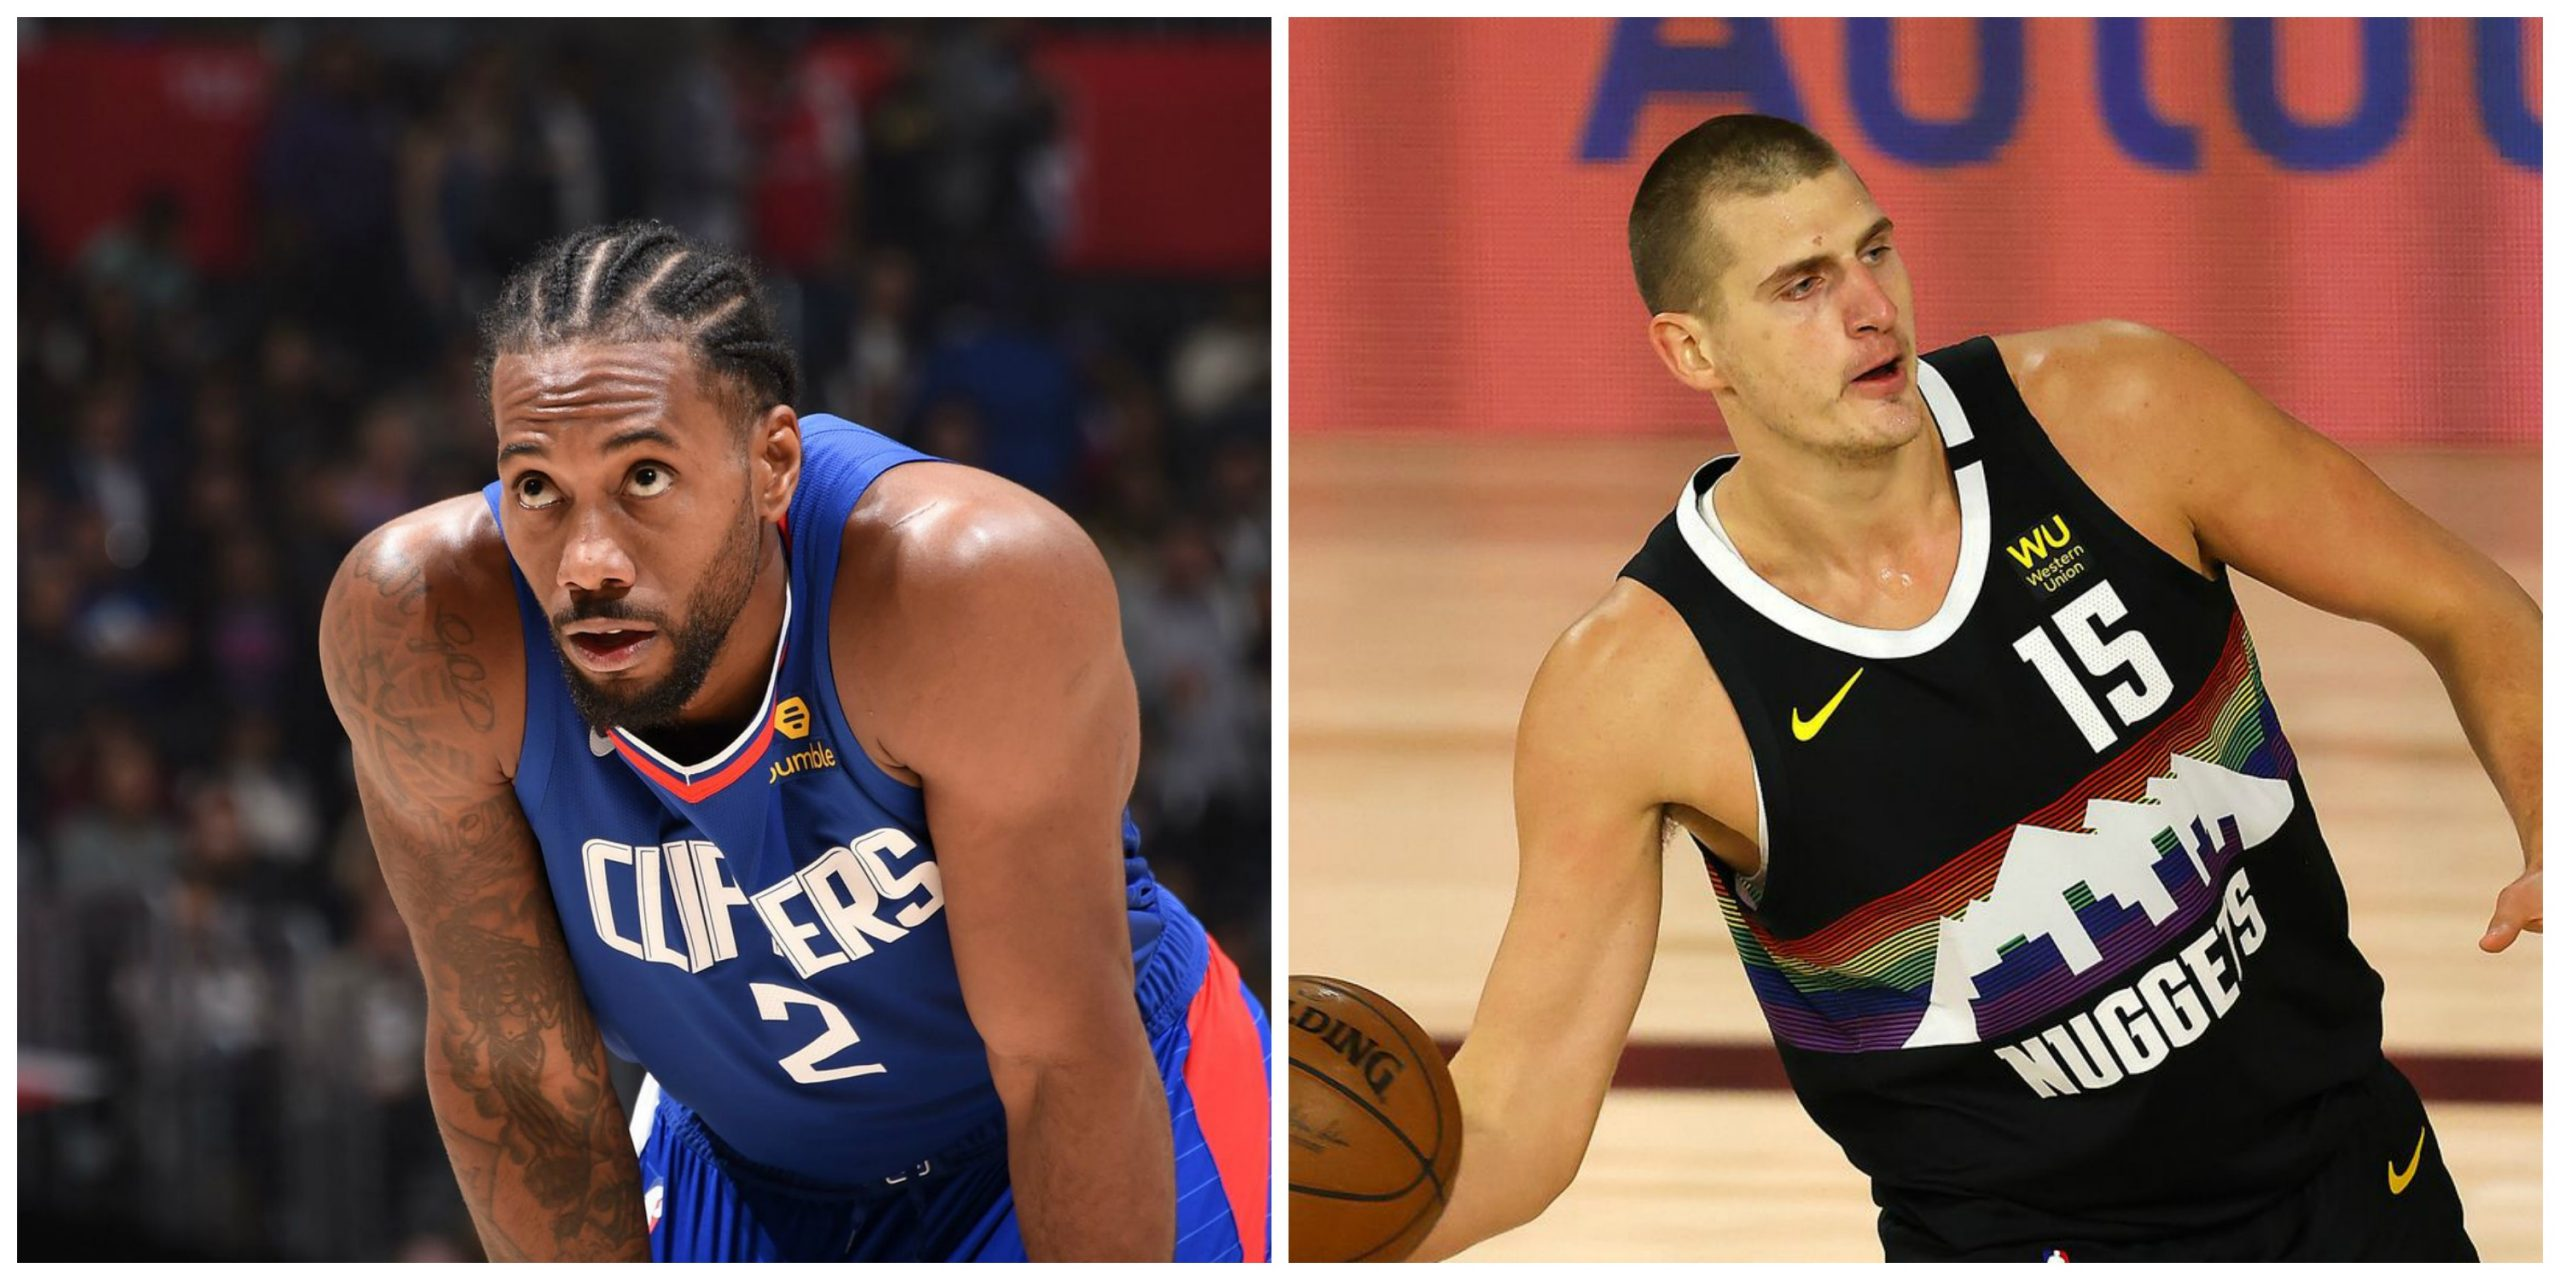 Clippers Versus Nuggets 2020 Western Conference Semifinals